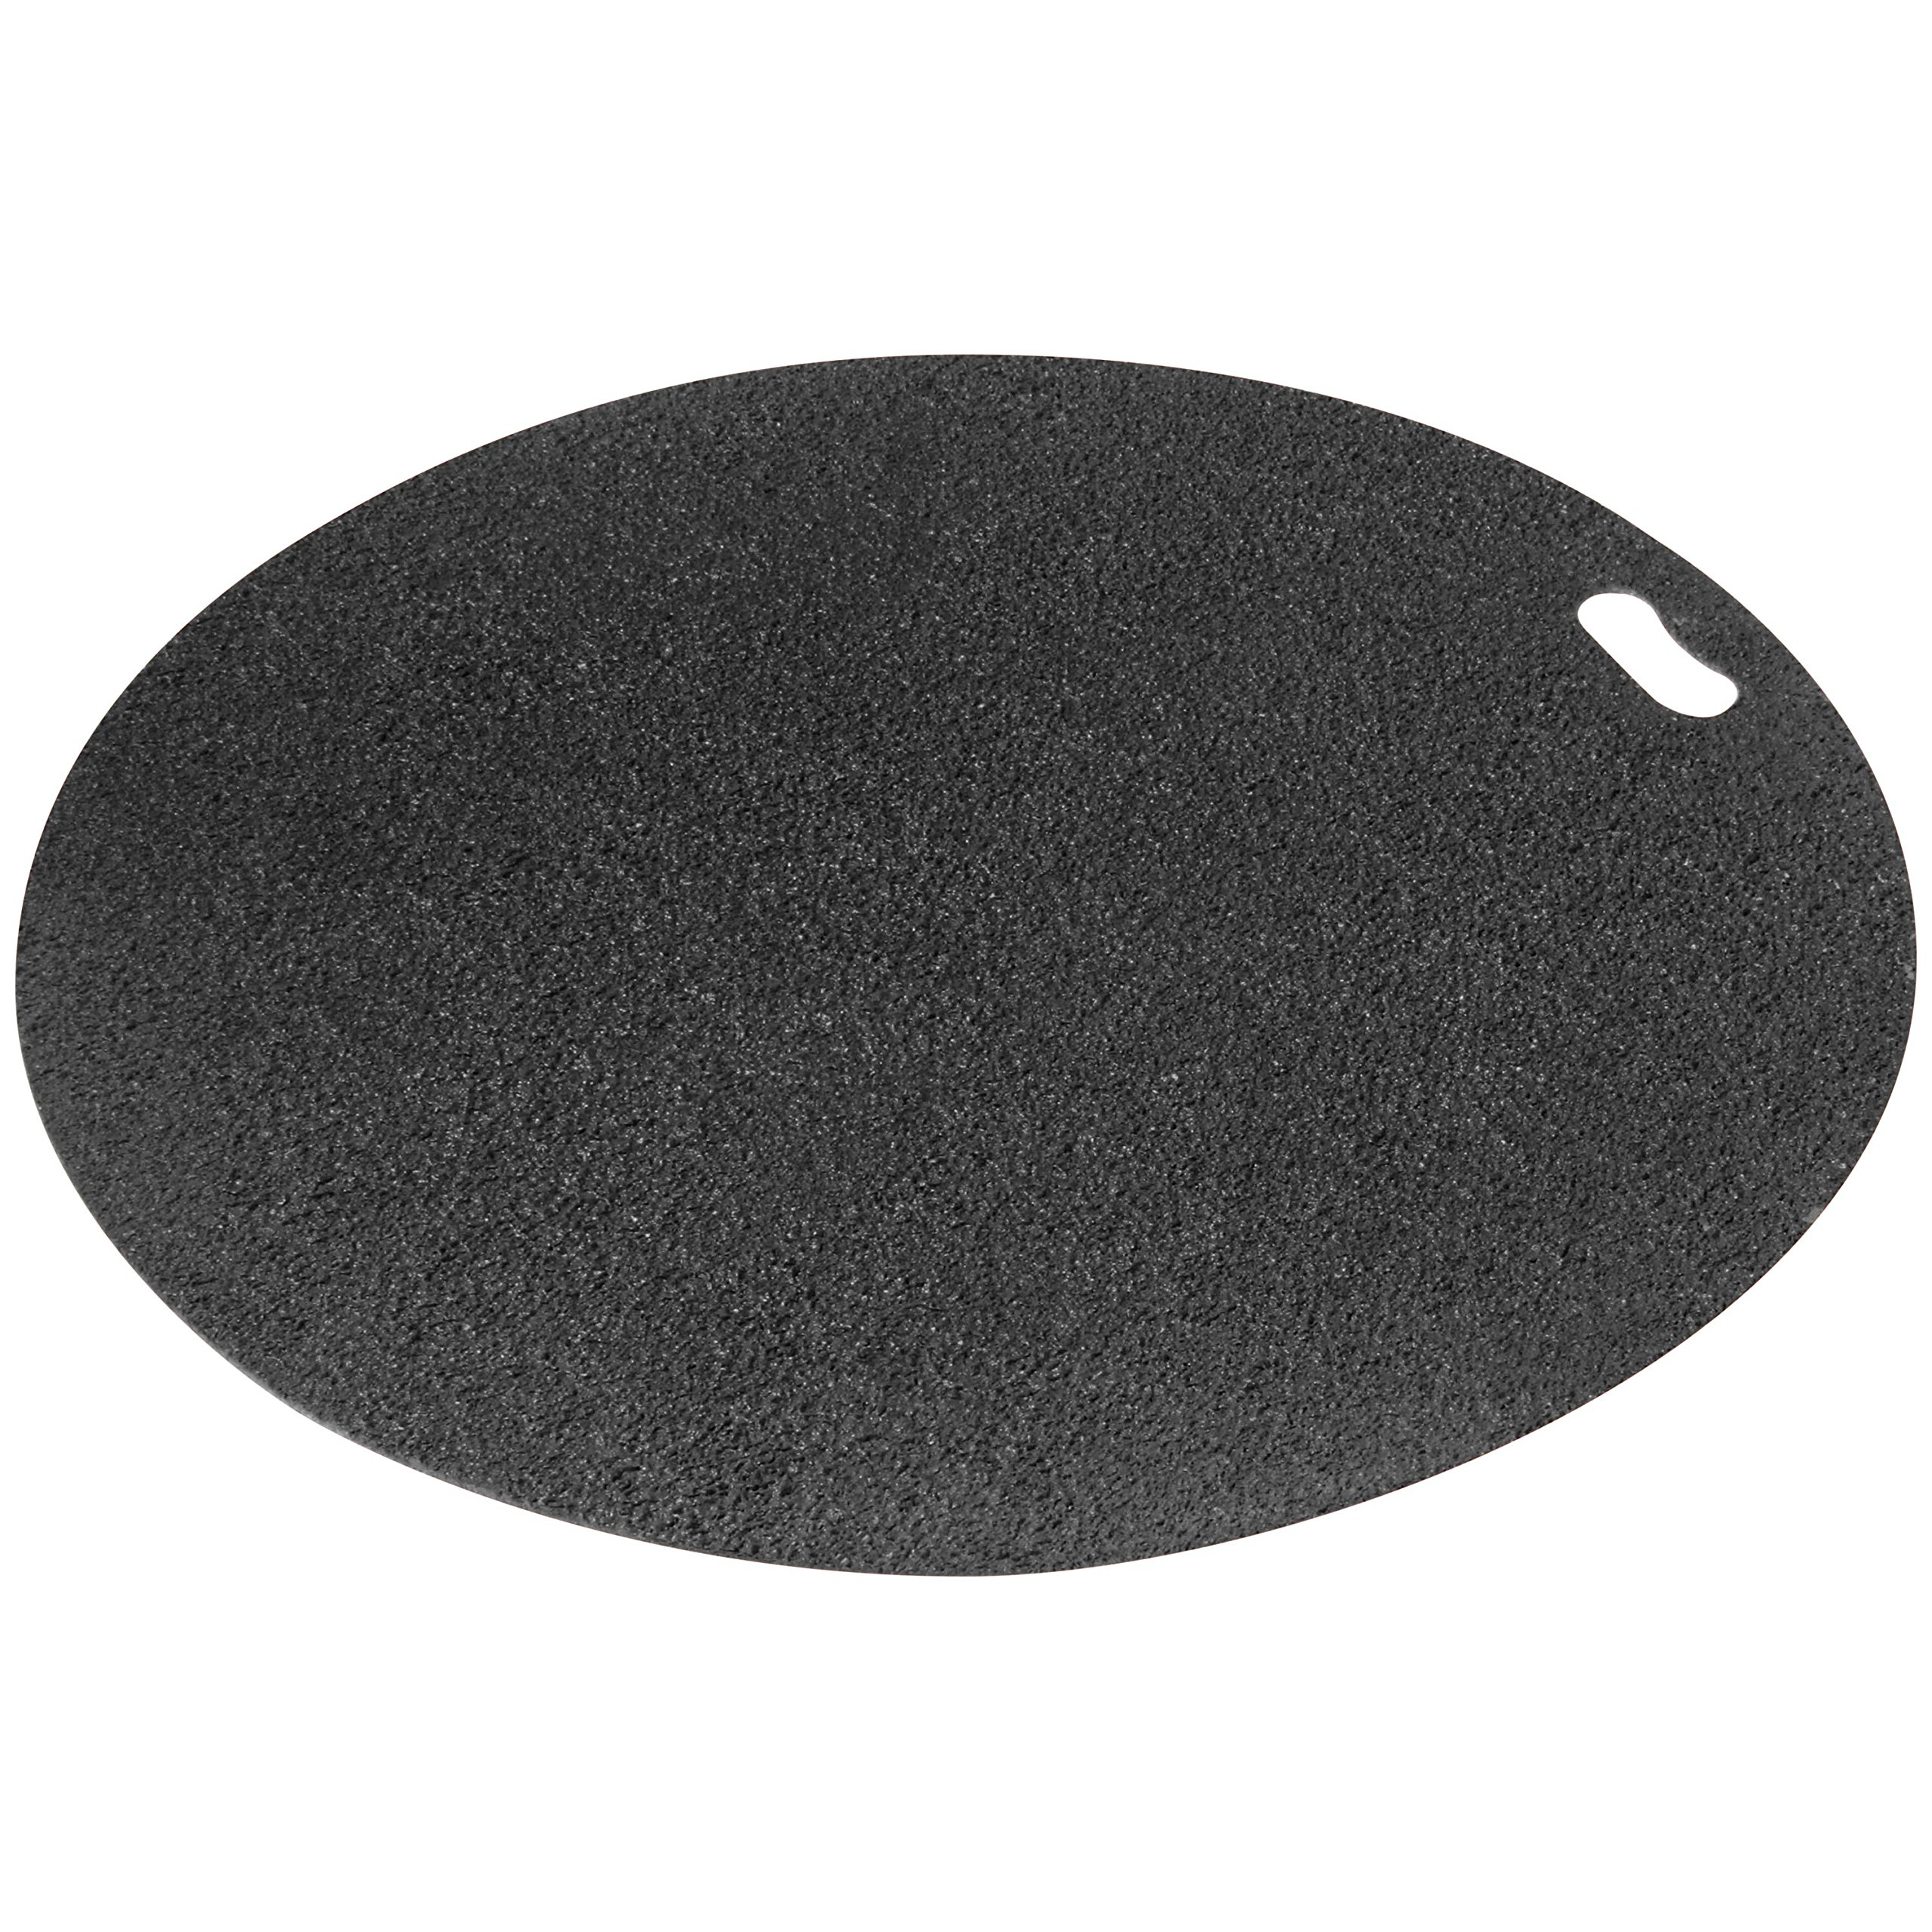 Diversitech Original Grill Mat - BBQ Floor Mat - Put Under Gas Grill, Fryer, Fire Pit - Protects Decks and Patios - 30 Inches - Round -  Gray by Diversitech Original (Image #1)